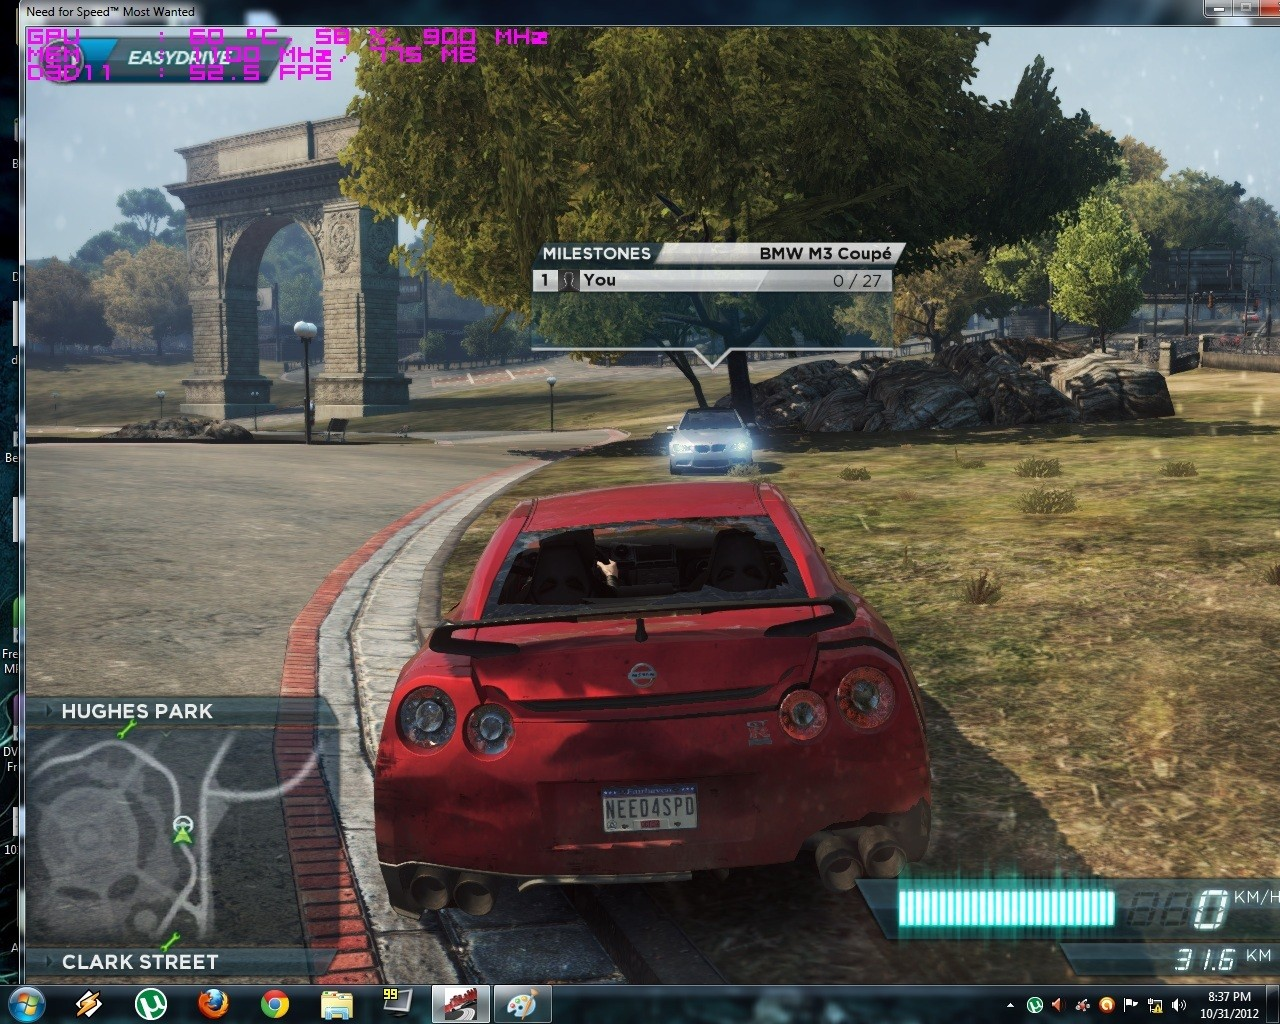 Need For Speed Most Wanted 2012 Ana Konu 187 Sayfa 43 104